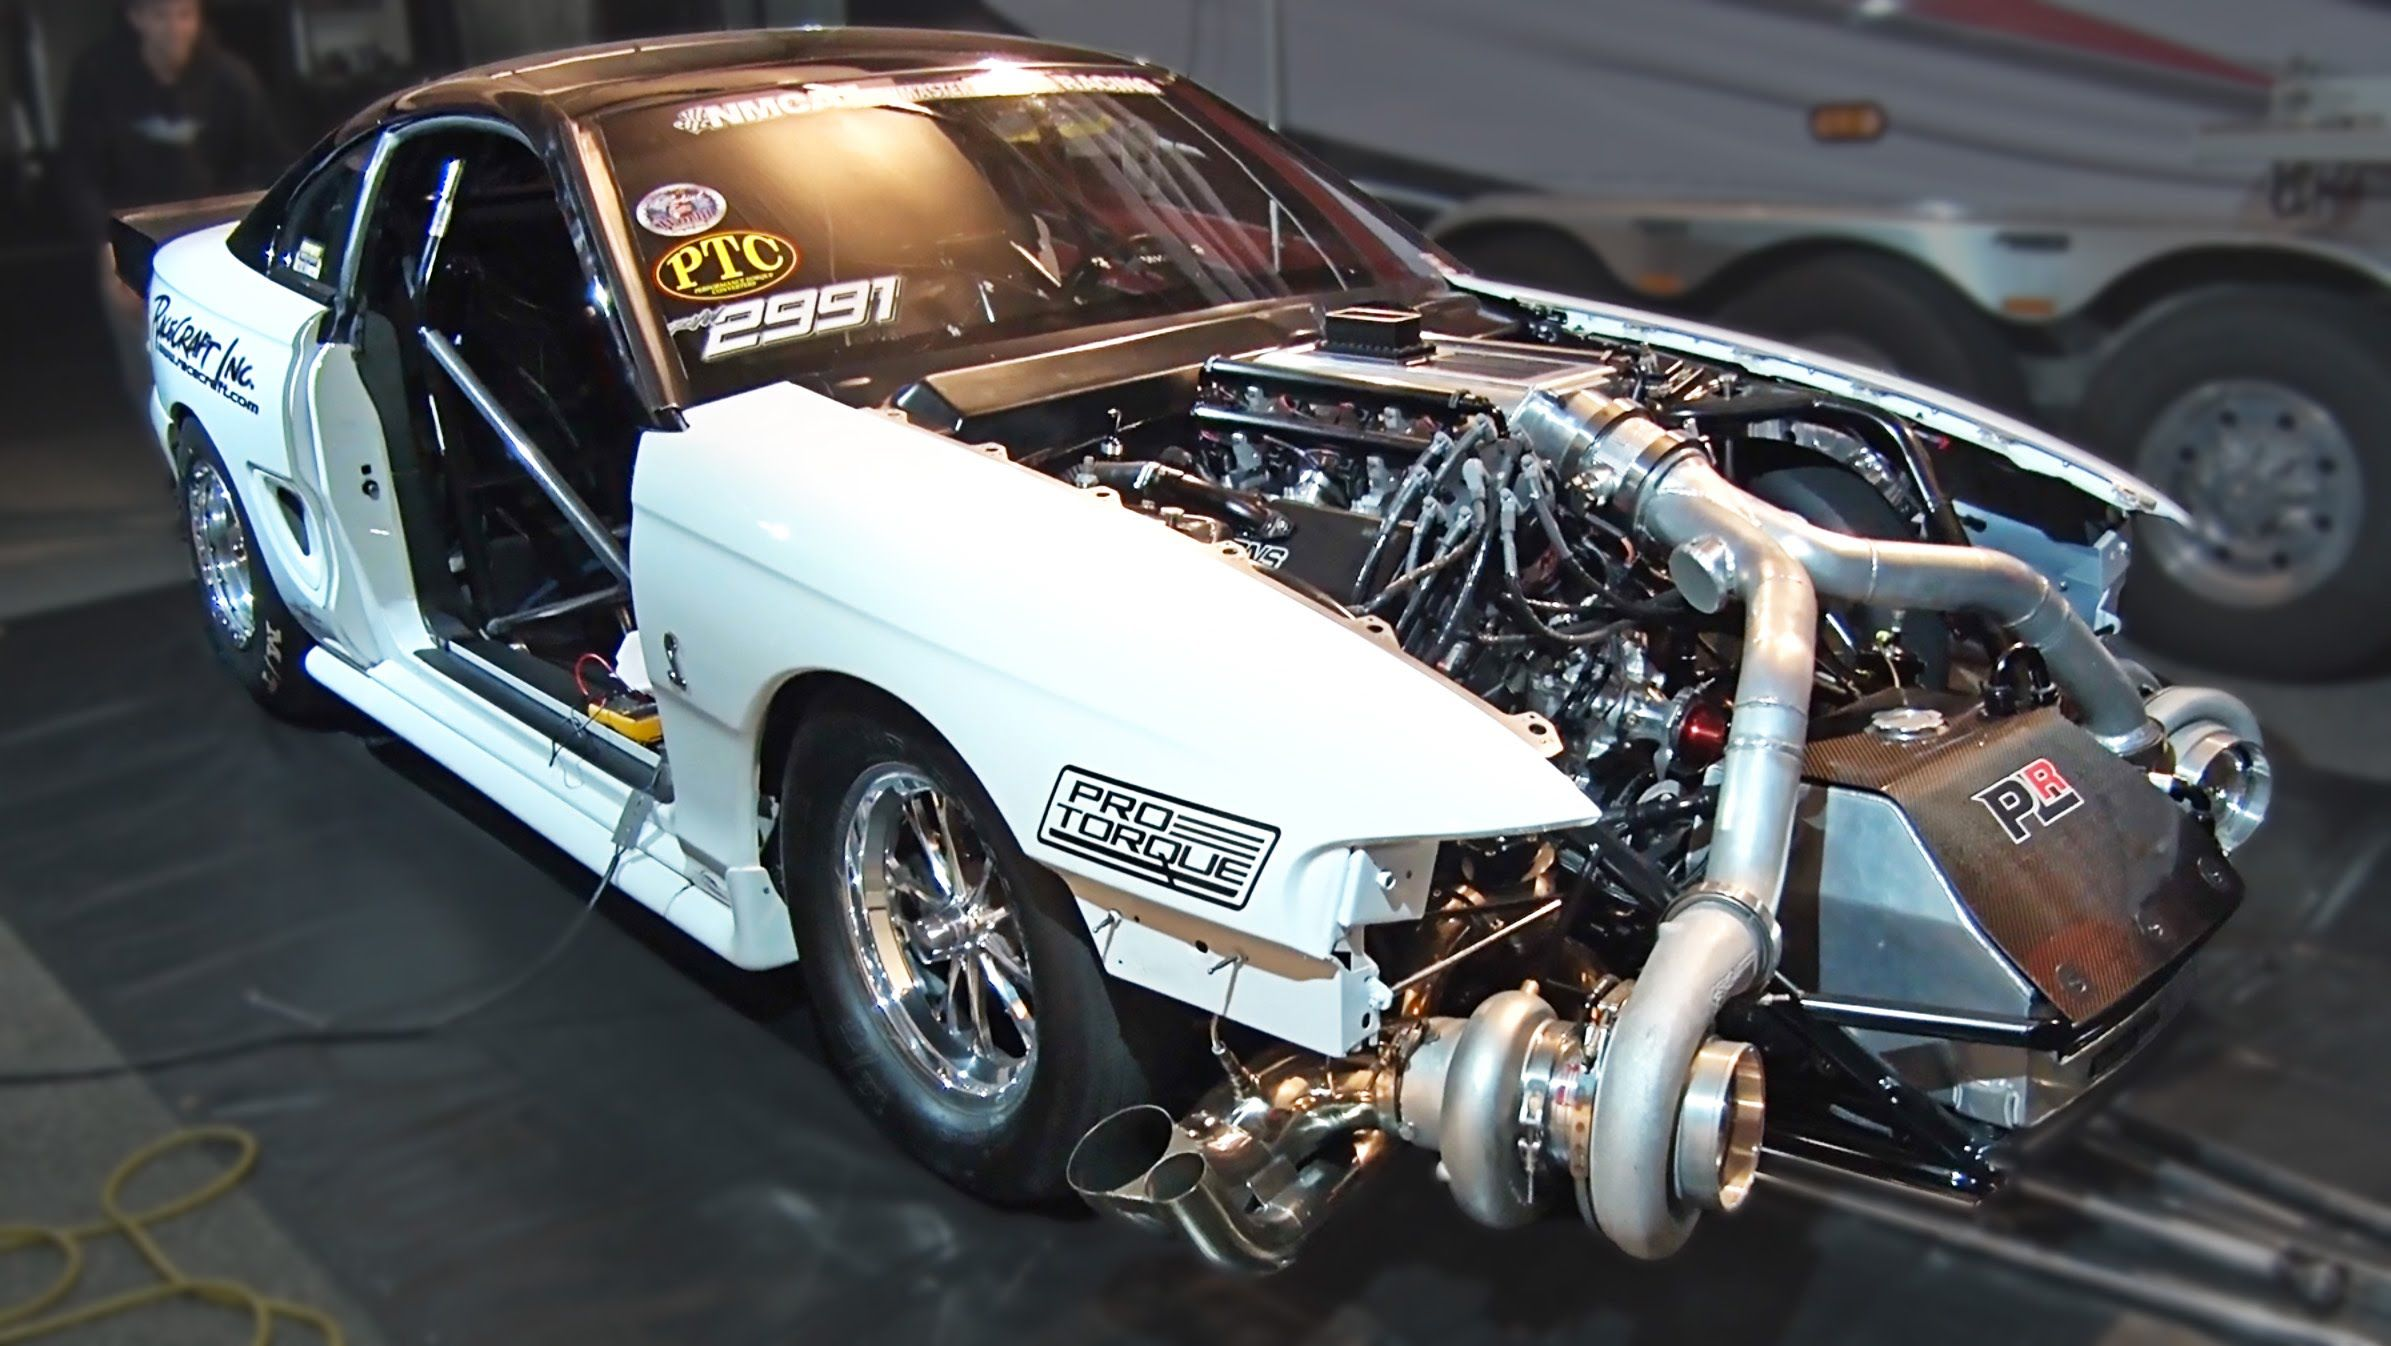 Twin turbo ford mustang 102mm turbochargers